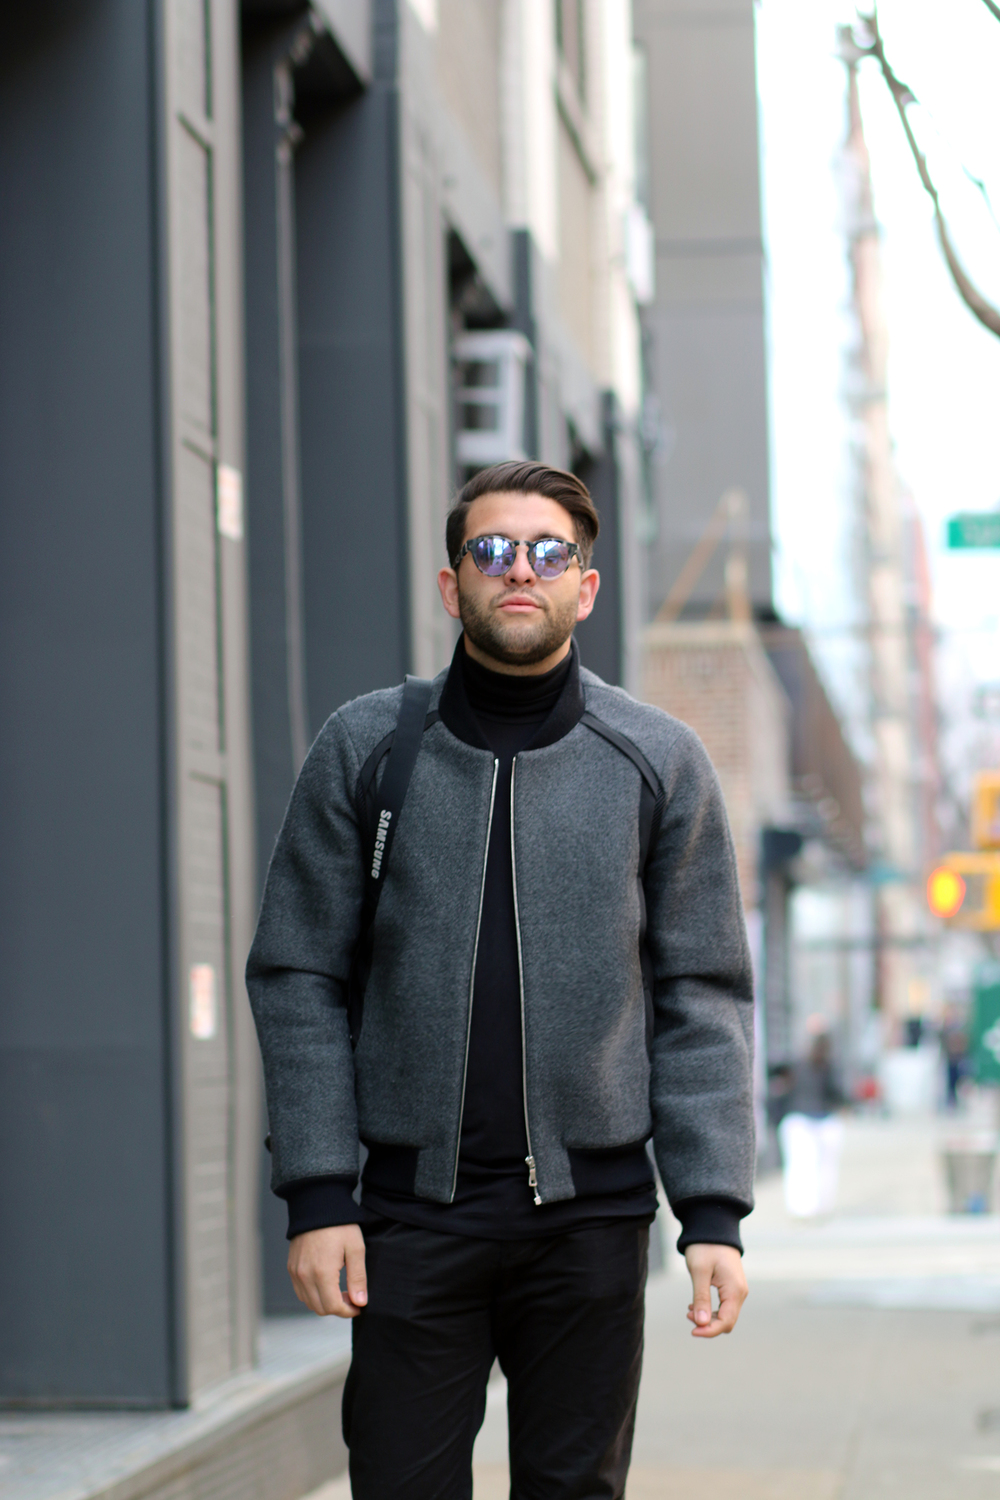 Garcia Velez Jacket/ Westward Leaning Sunglasses